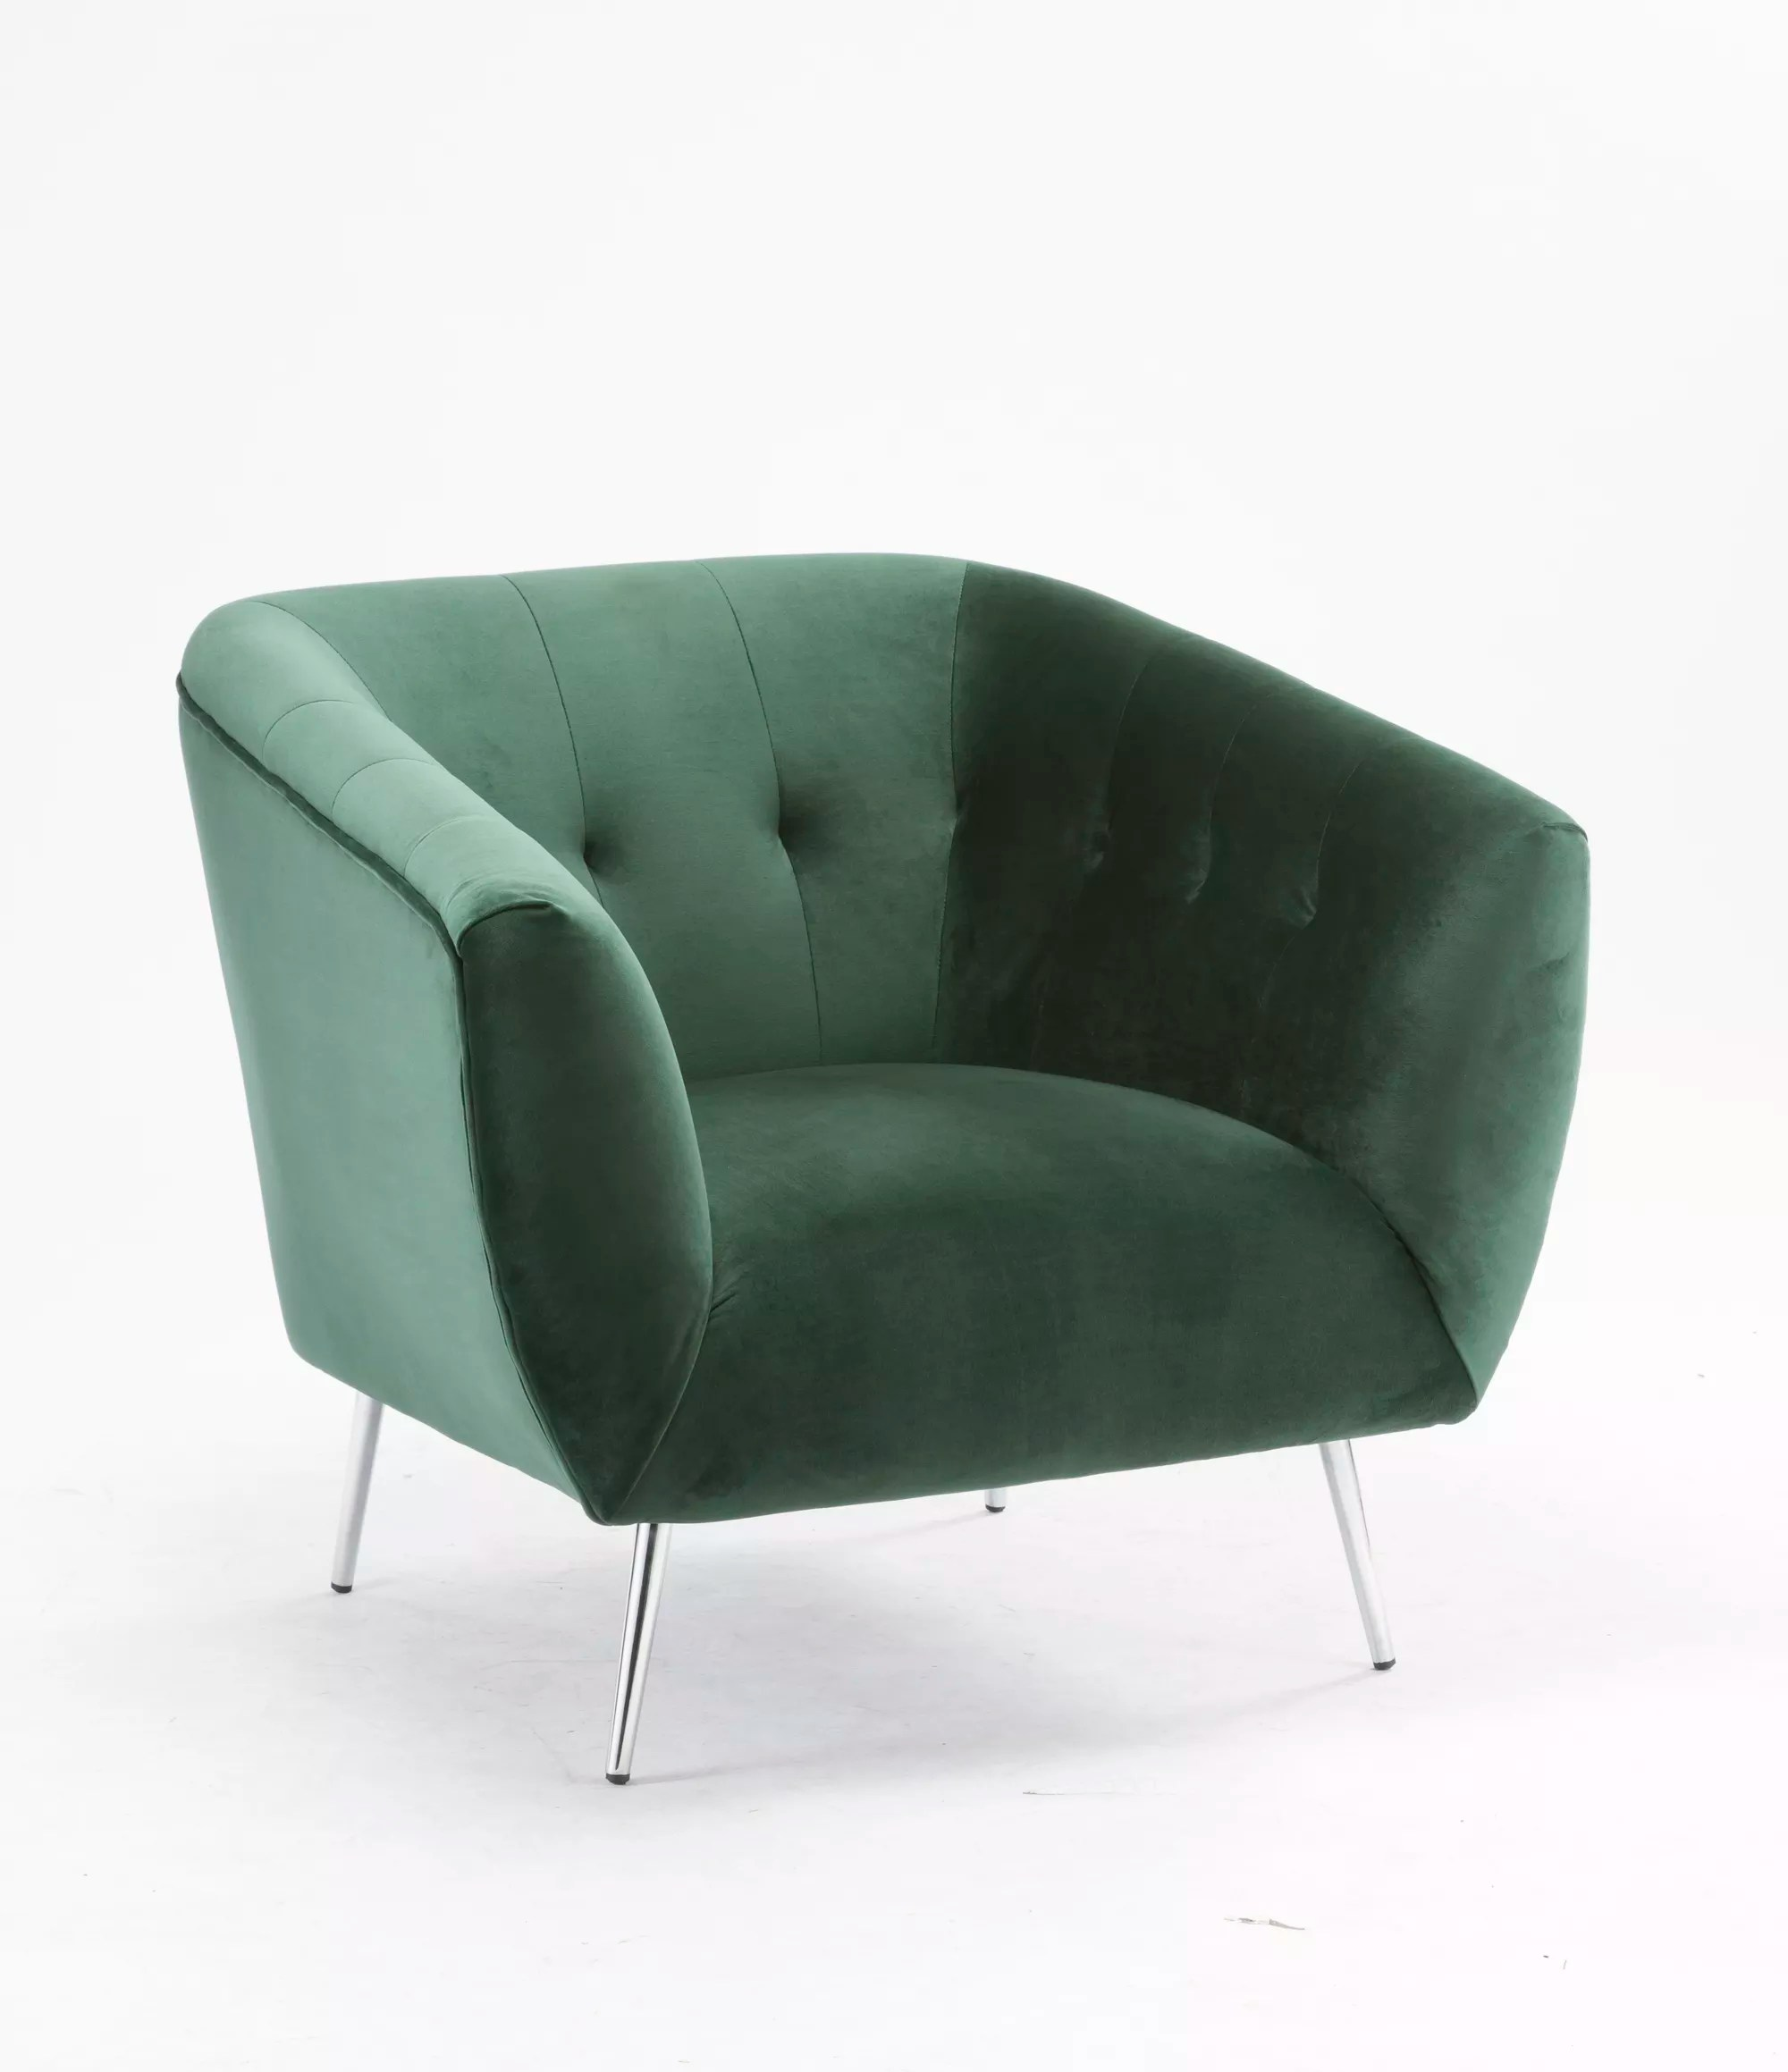 velvet chair design legs for chairs luxury modern green accent with arms arm living room leisure